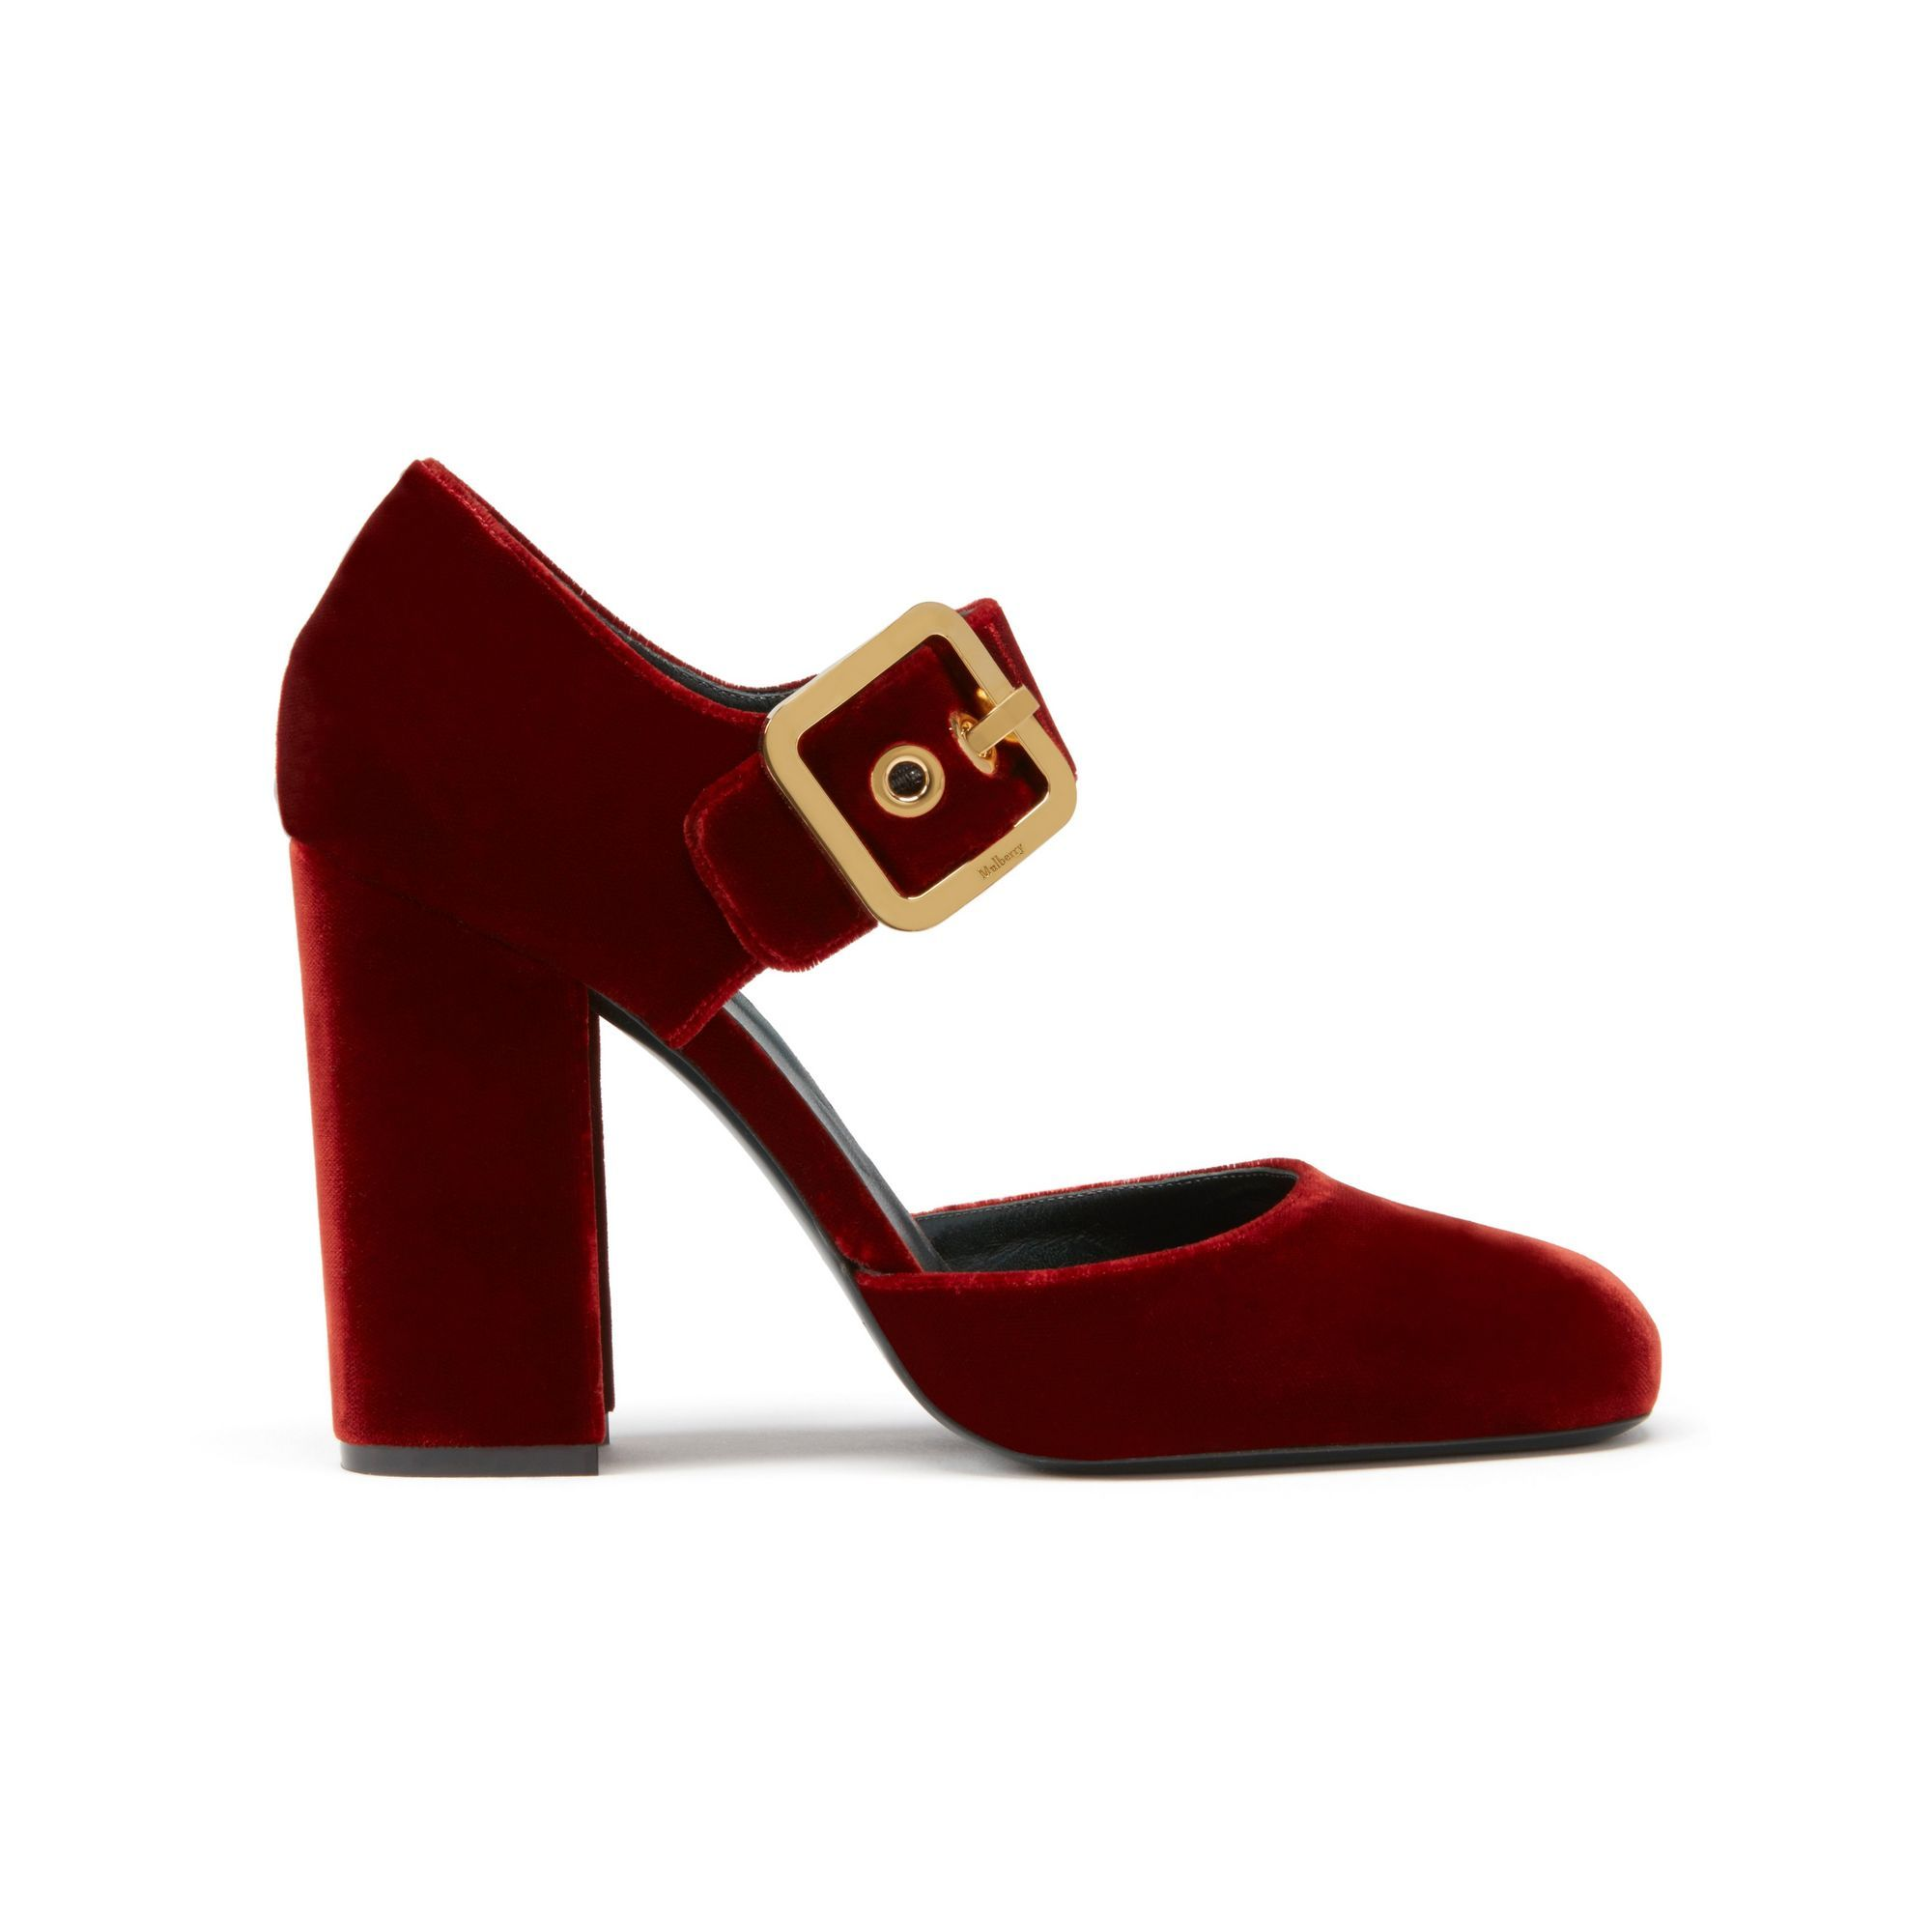 142878c73ff Shop the Buckle Mary-Jane Pump in Rust Velvet at Mulberry.com. A ...